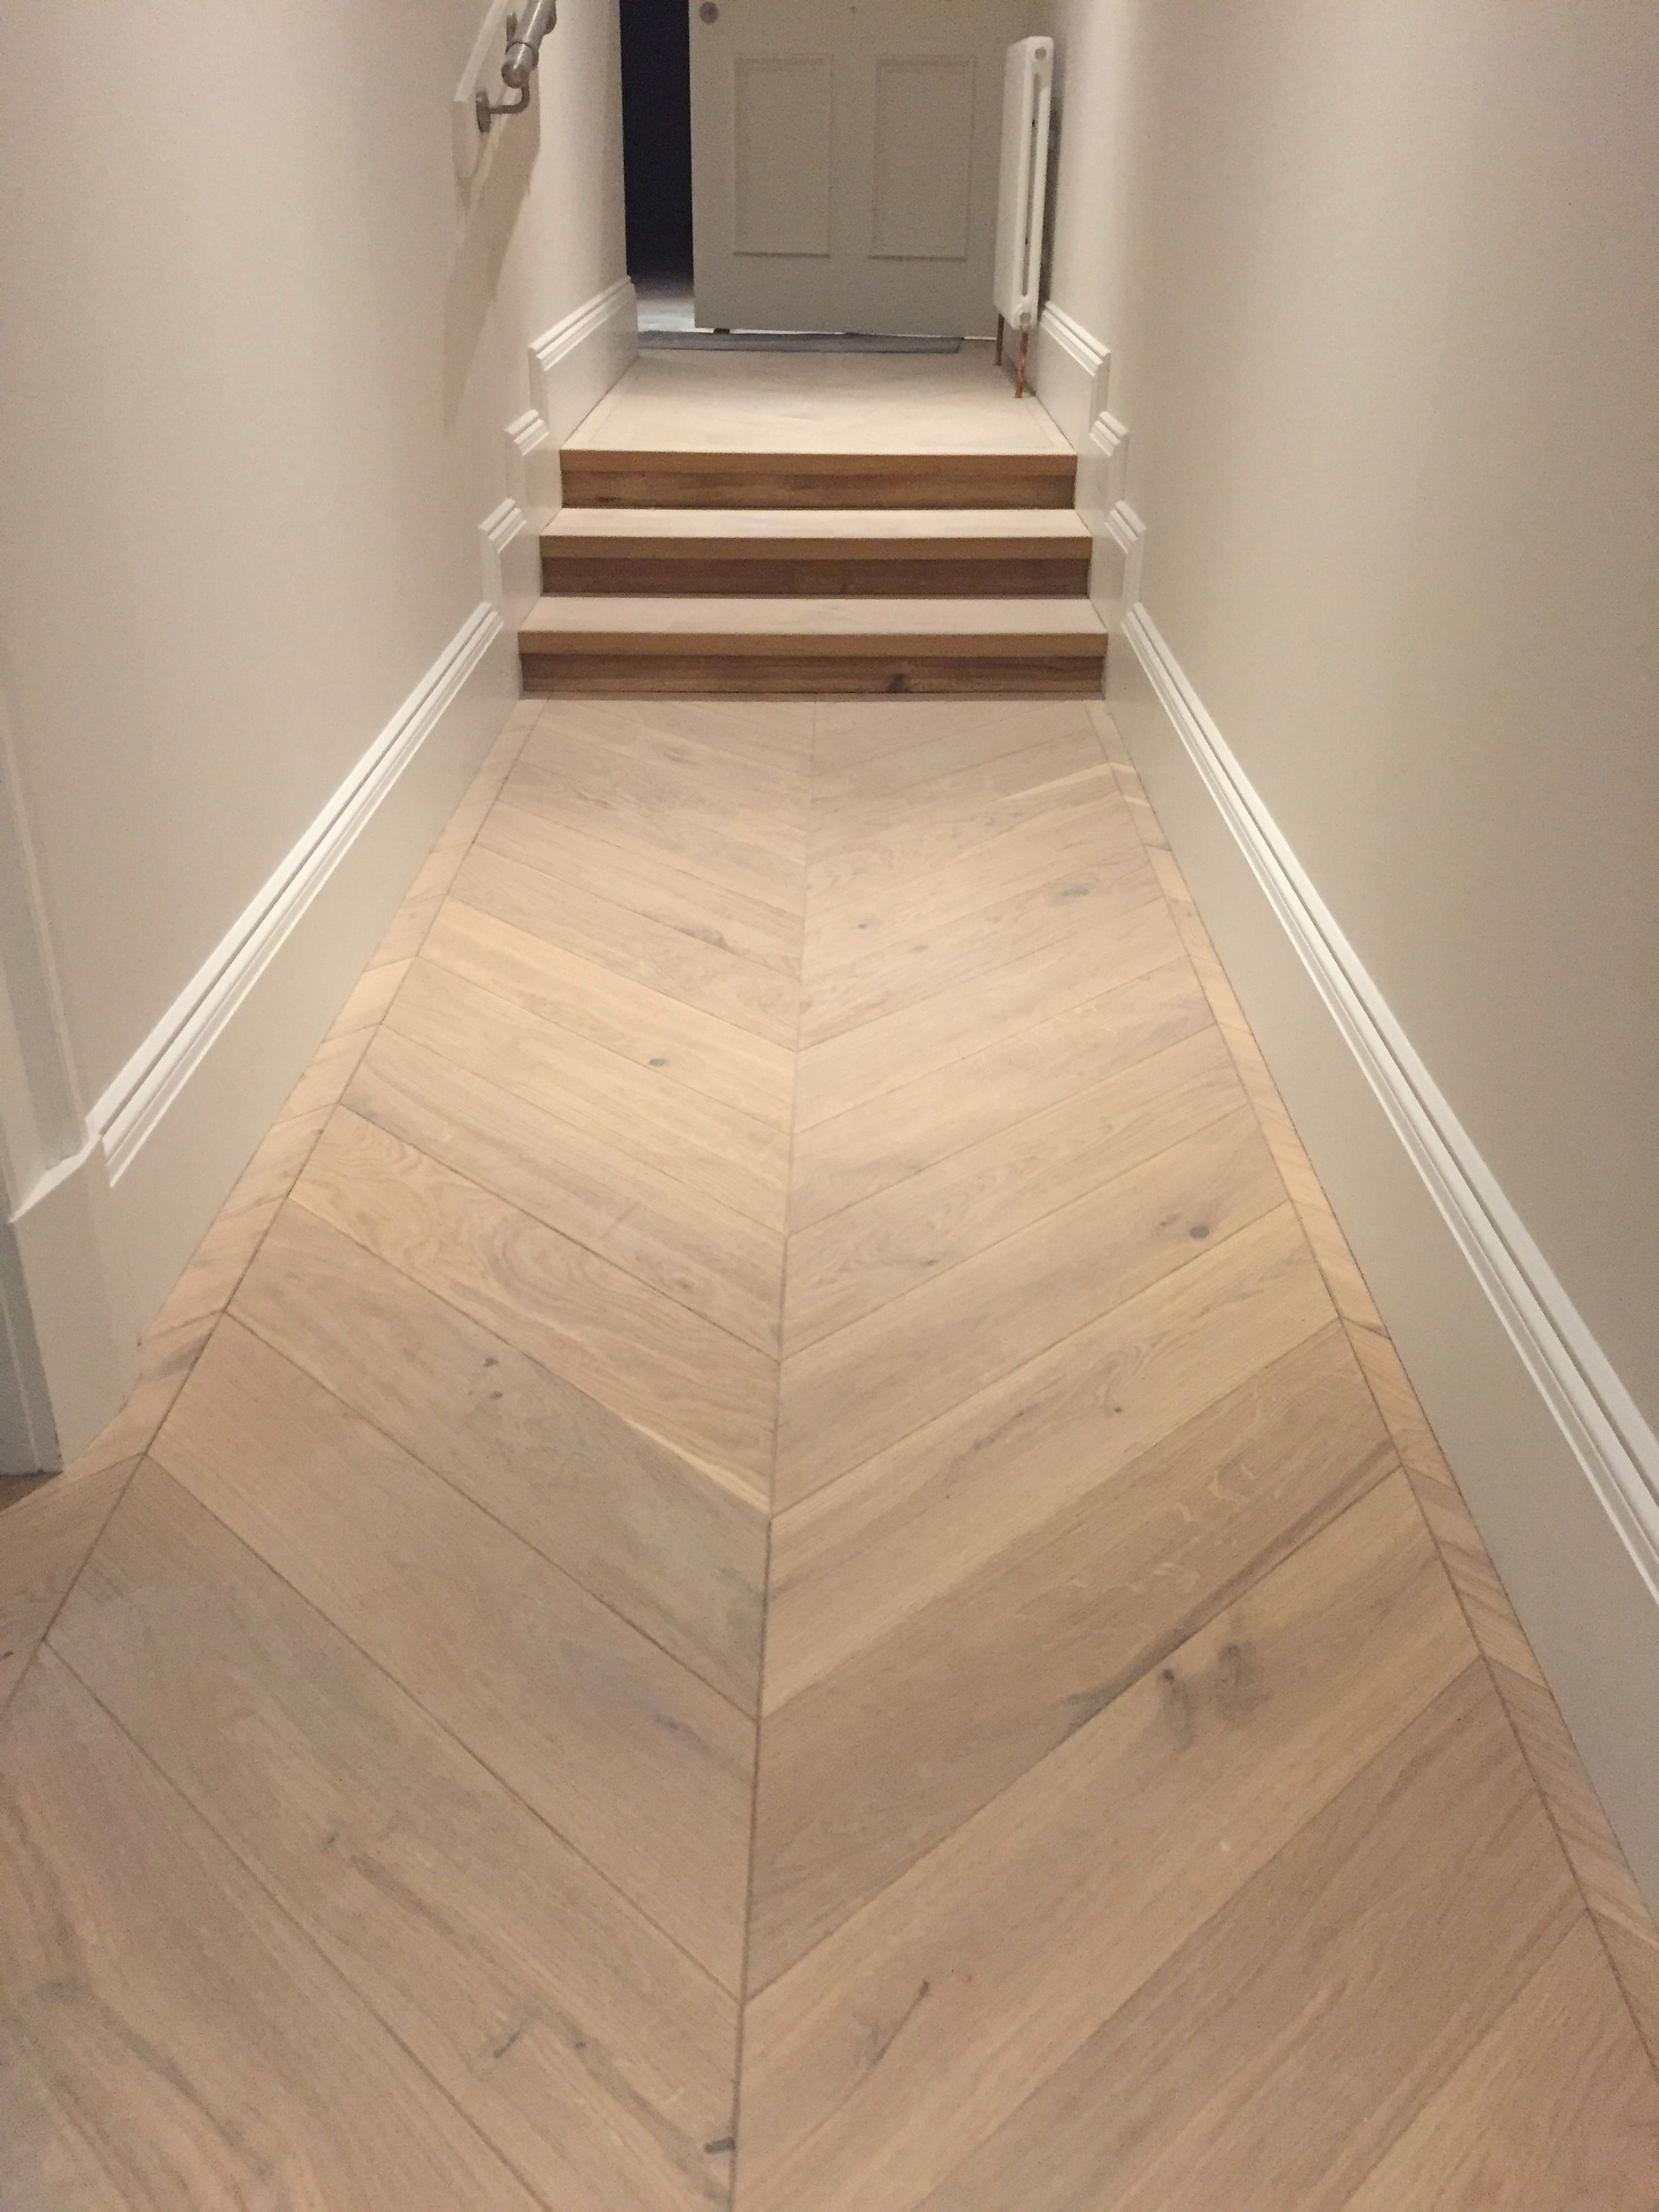 driftwood oak natural engineered floor european custom stained wood floors rhodium